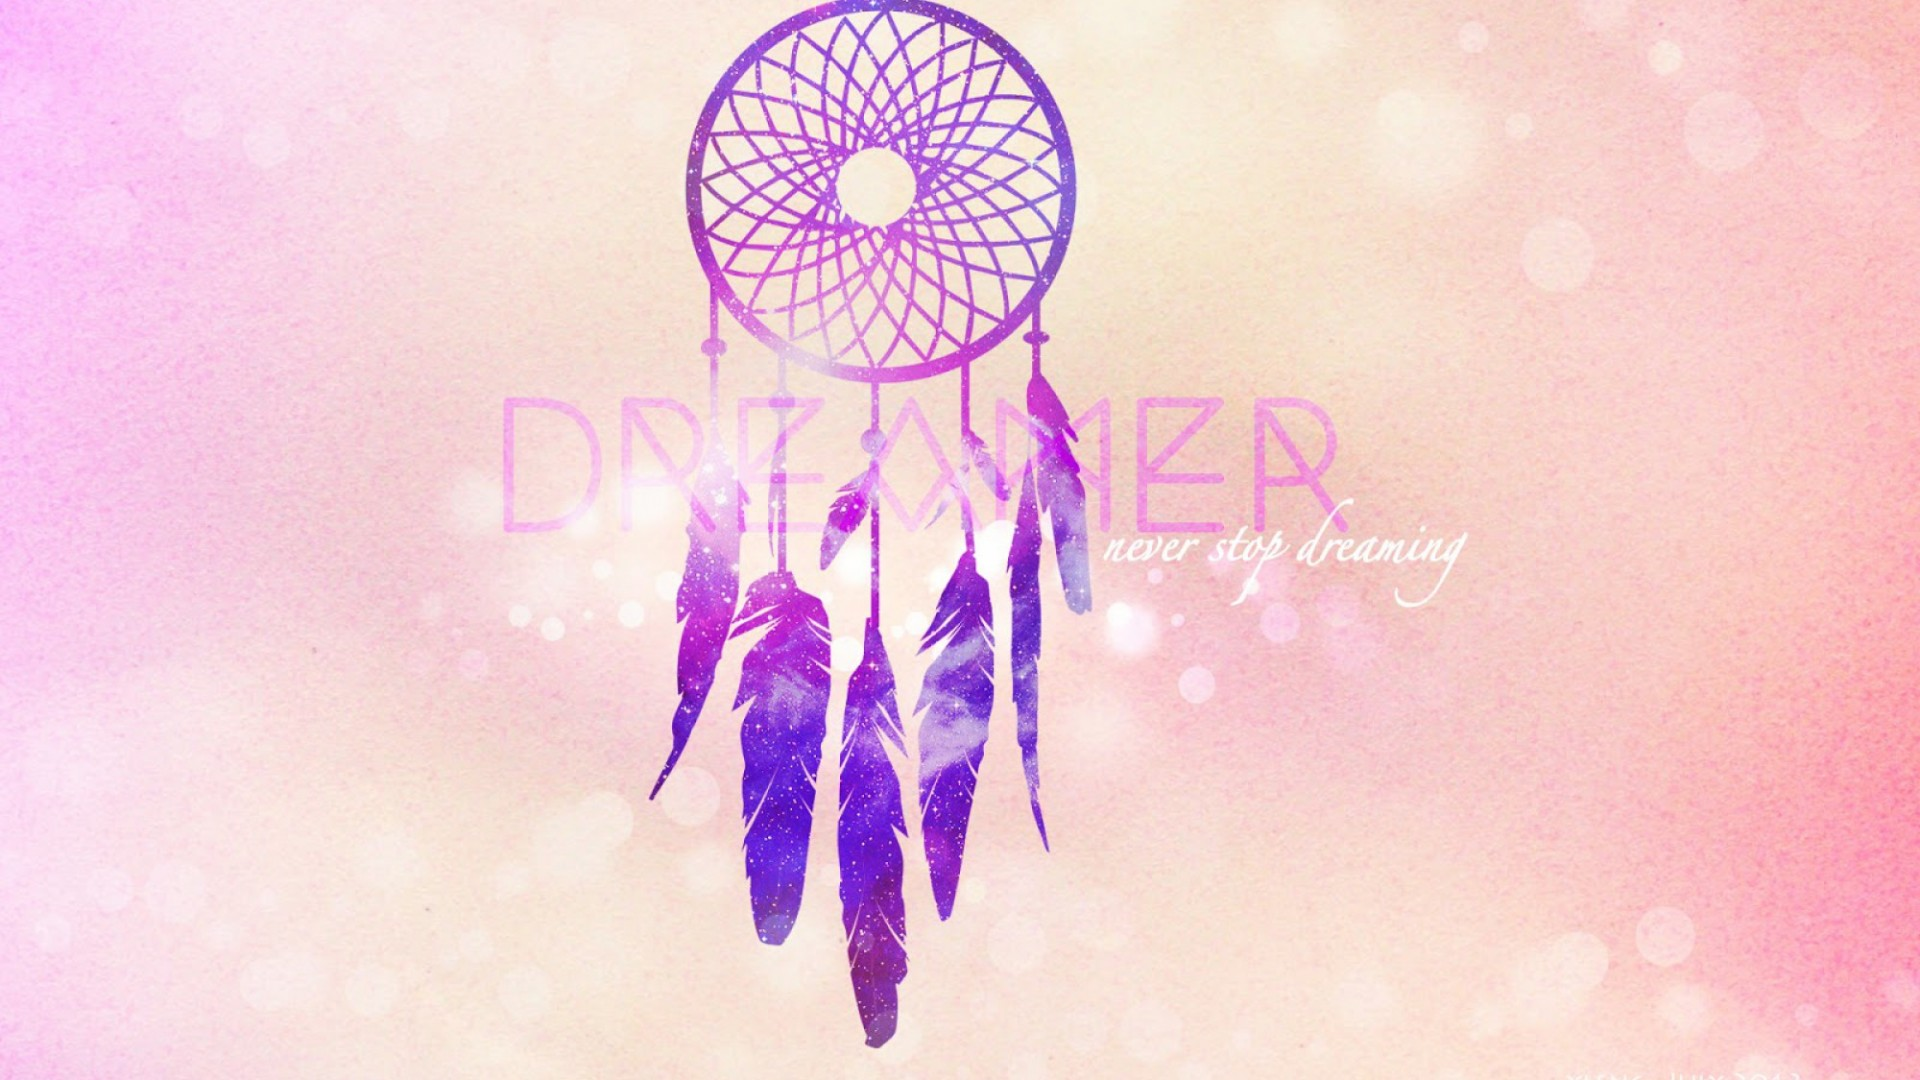 dreamcatcher wallpaper 20